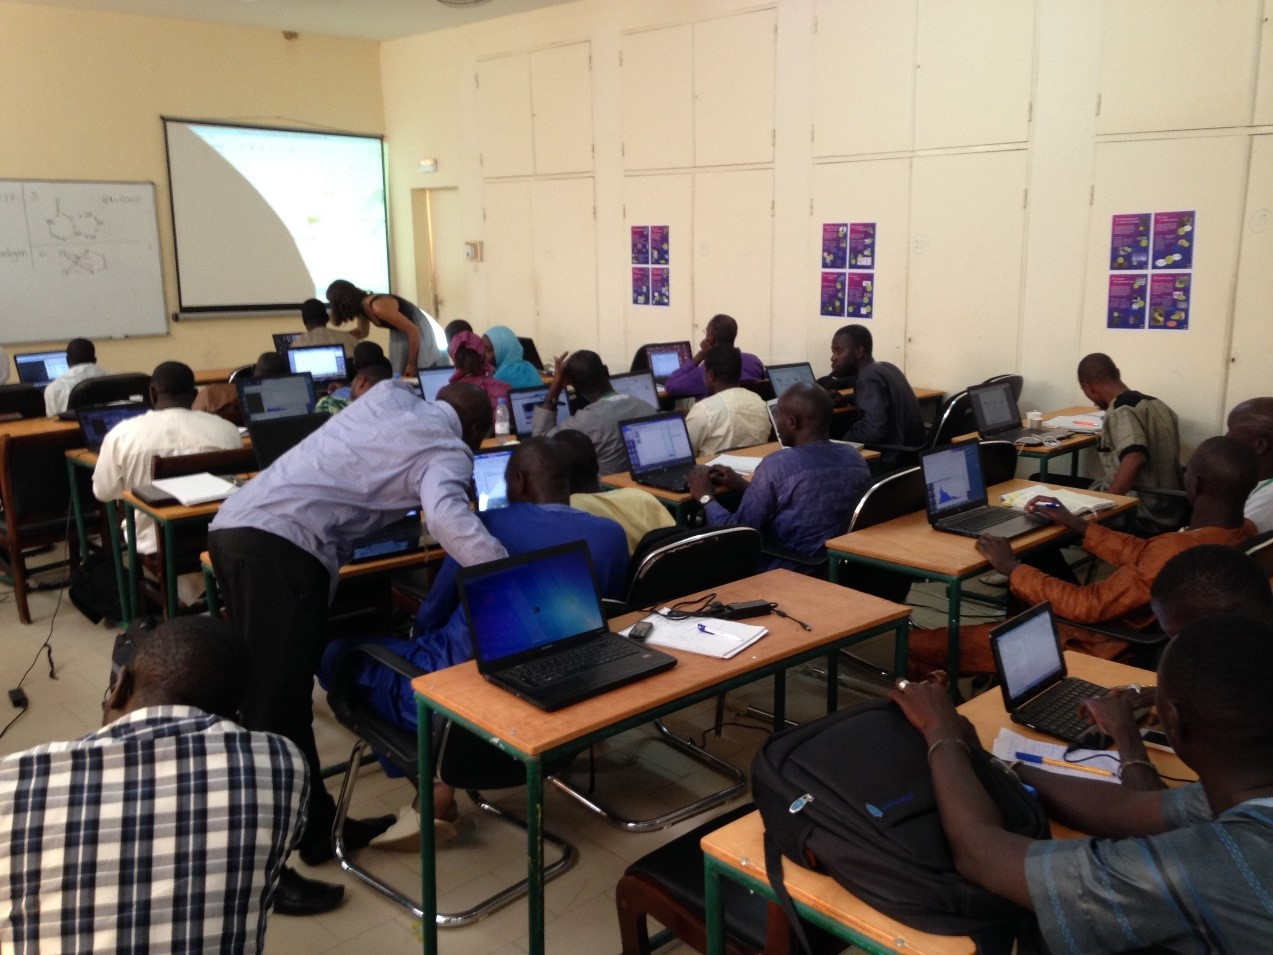 Participants in the CSD System training session during the crystallography school and travelling laboratory held at the University of Ziguinchor, Senegal